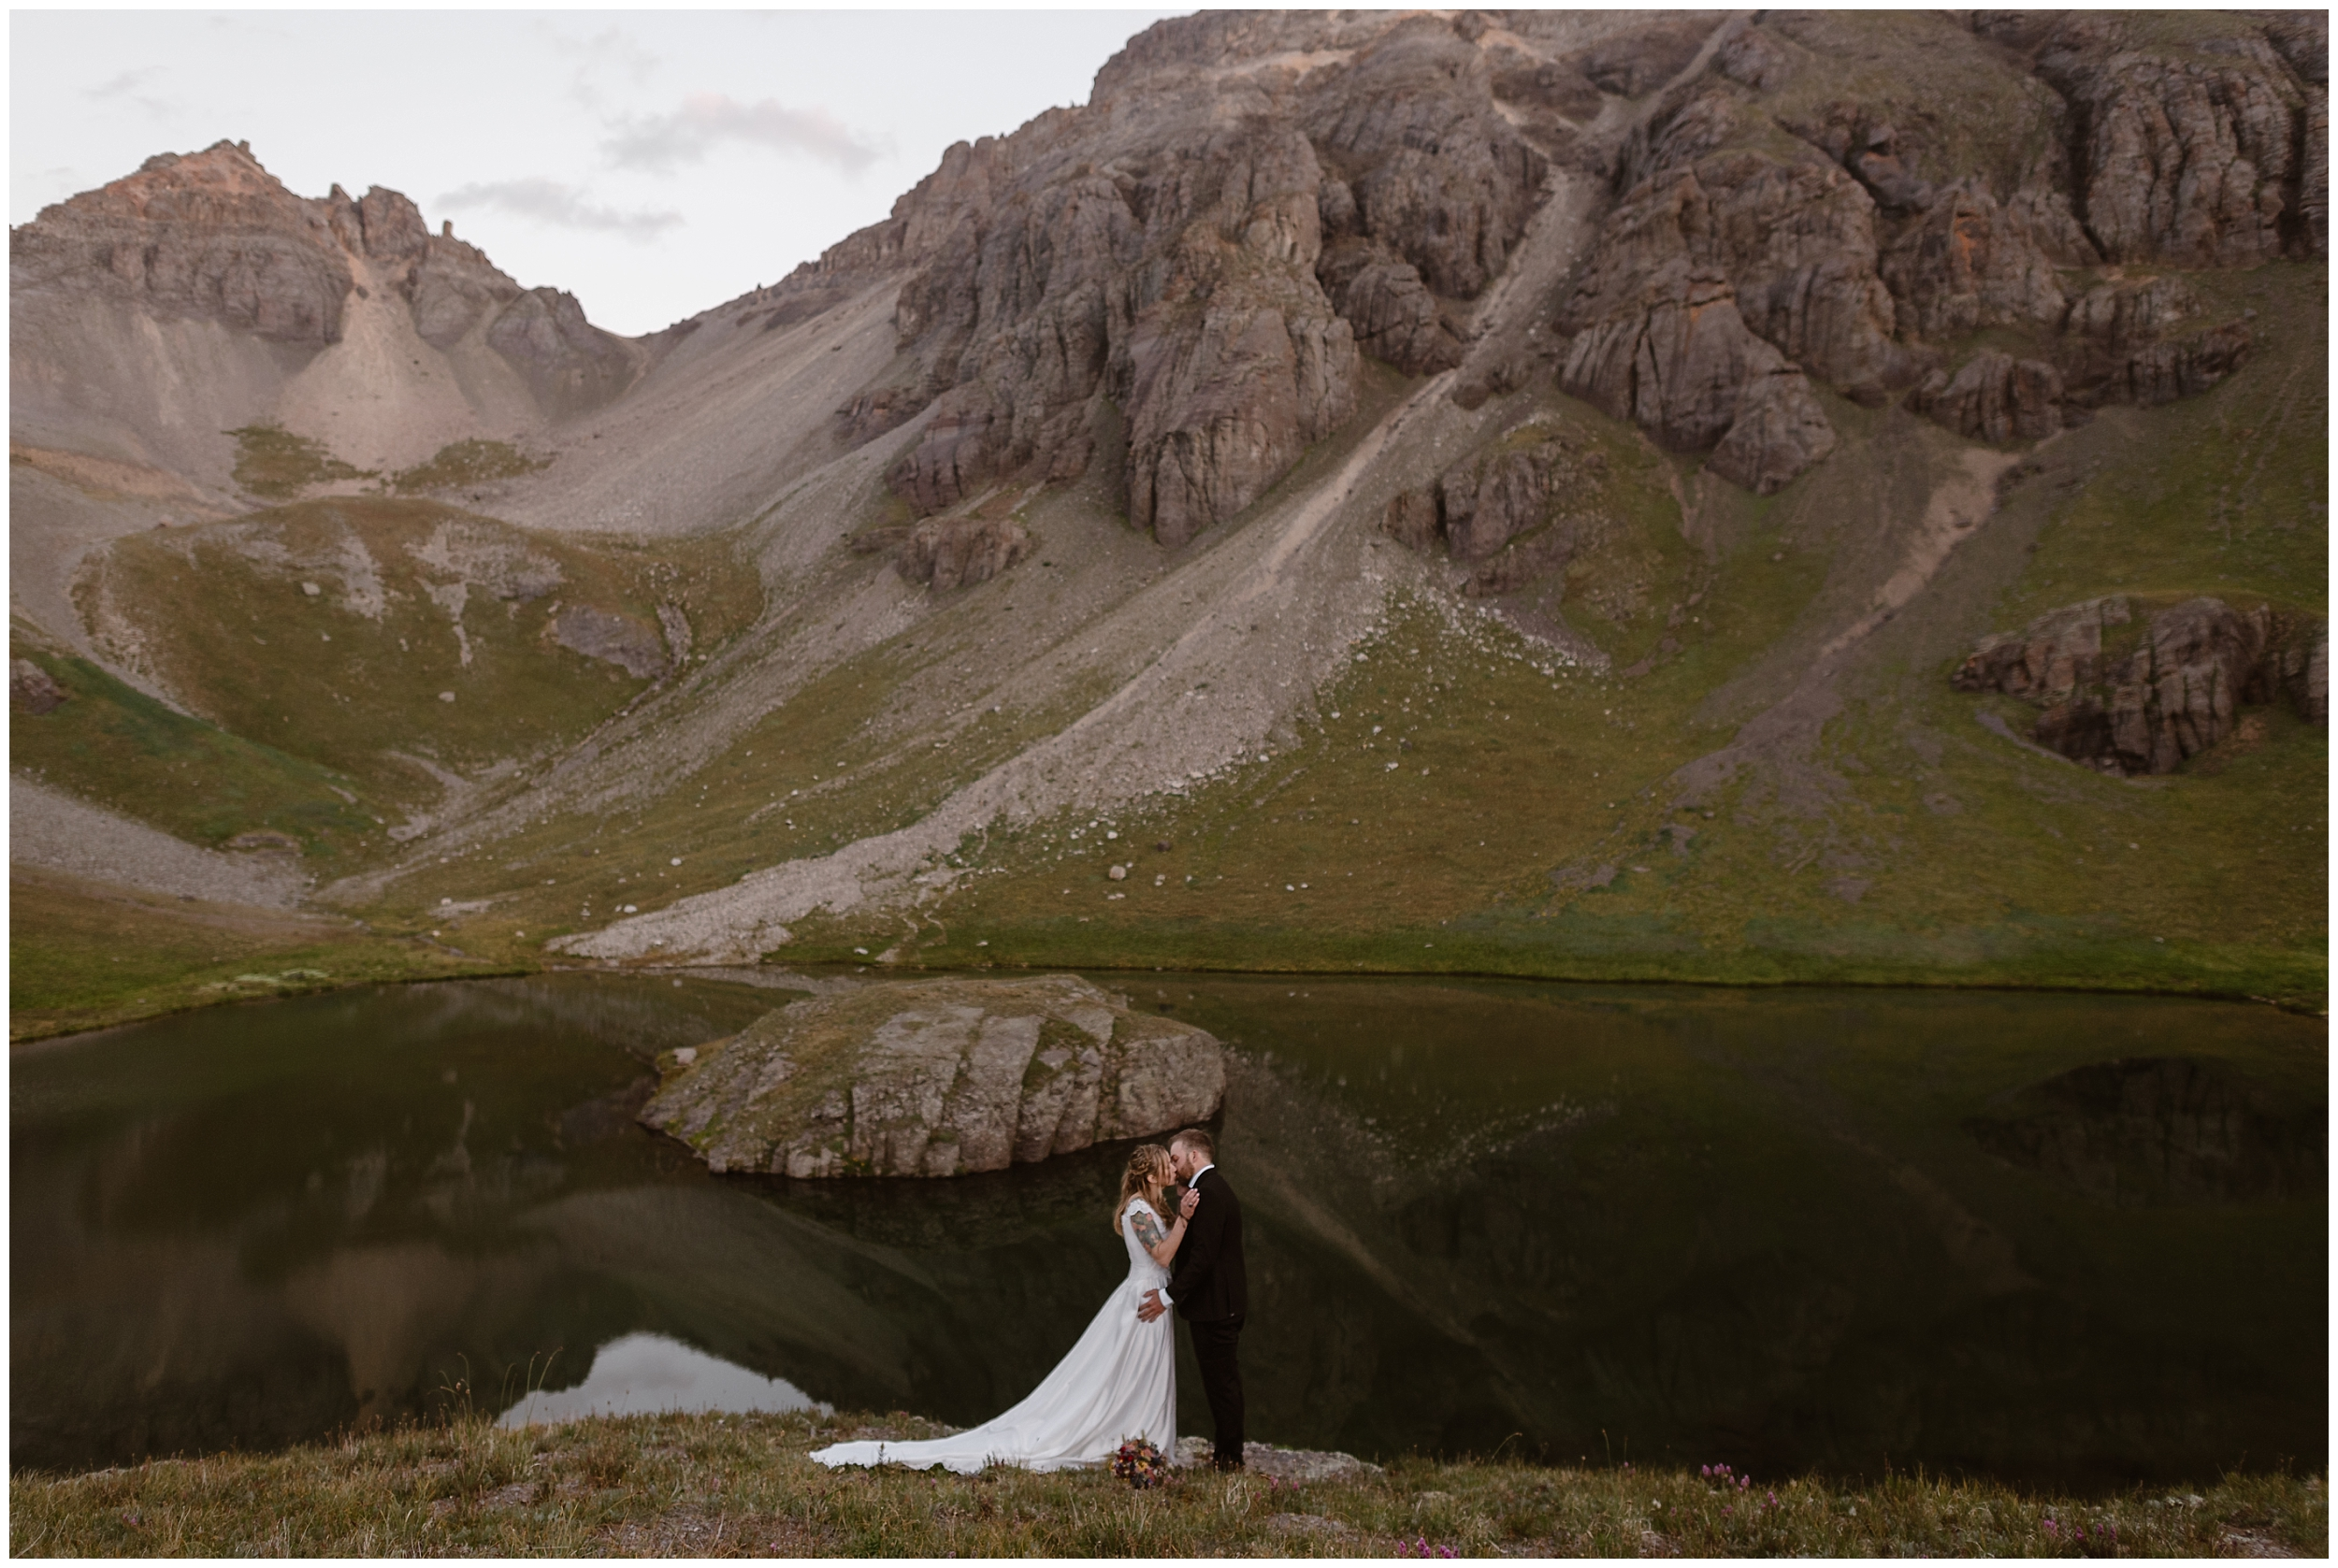 Brecka and Nick hold each other close at their unique elopement location during their Colorado mountain wedding.